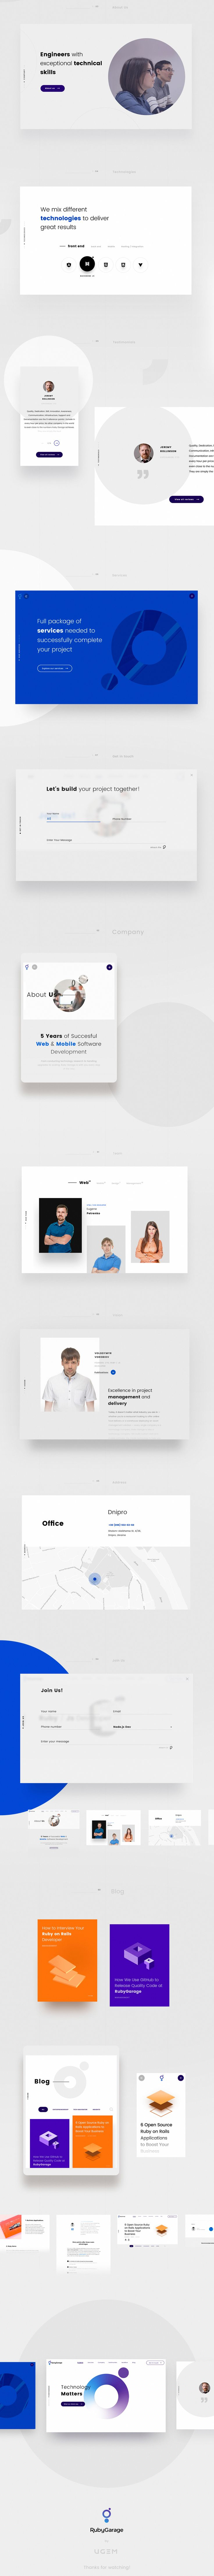 RubyGarage is a web development company specializing in Ruby and Ruby on Rails. After five years of work RubyGarage decided to implement rebranding and our design office has developed a new design concept. The new design concept includes total rebranding …